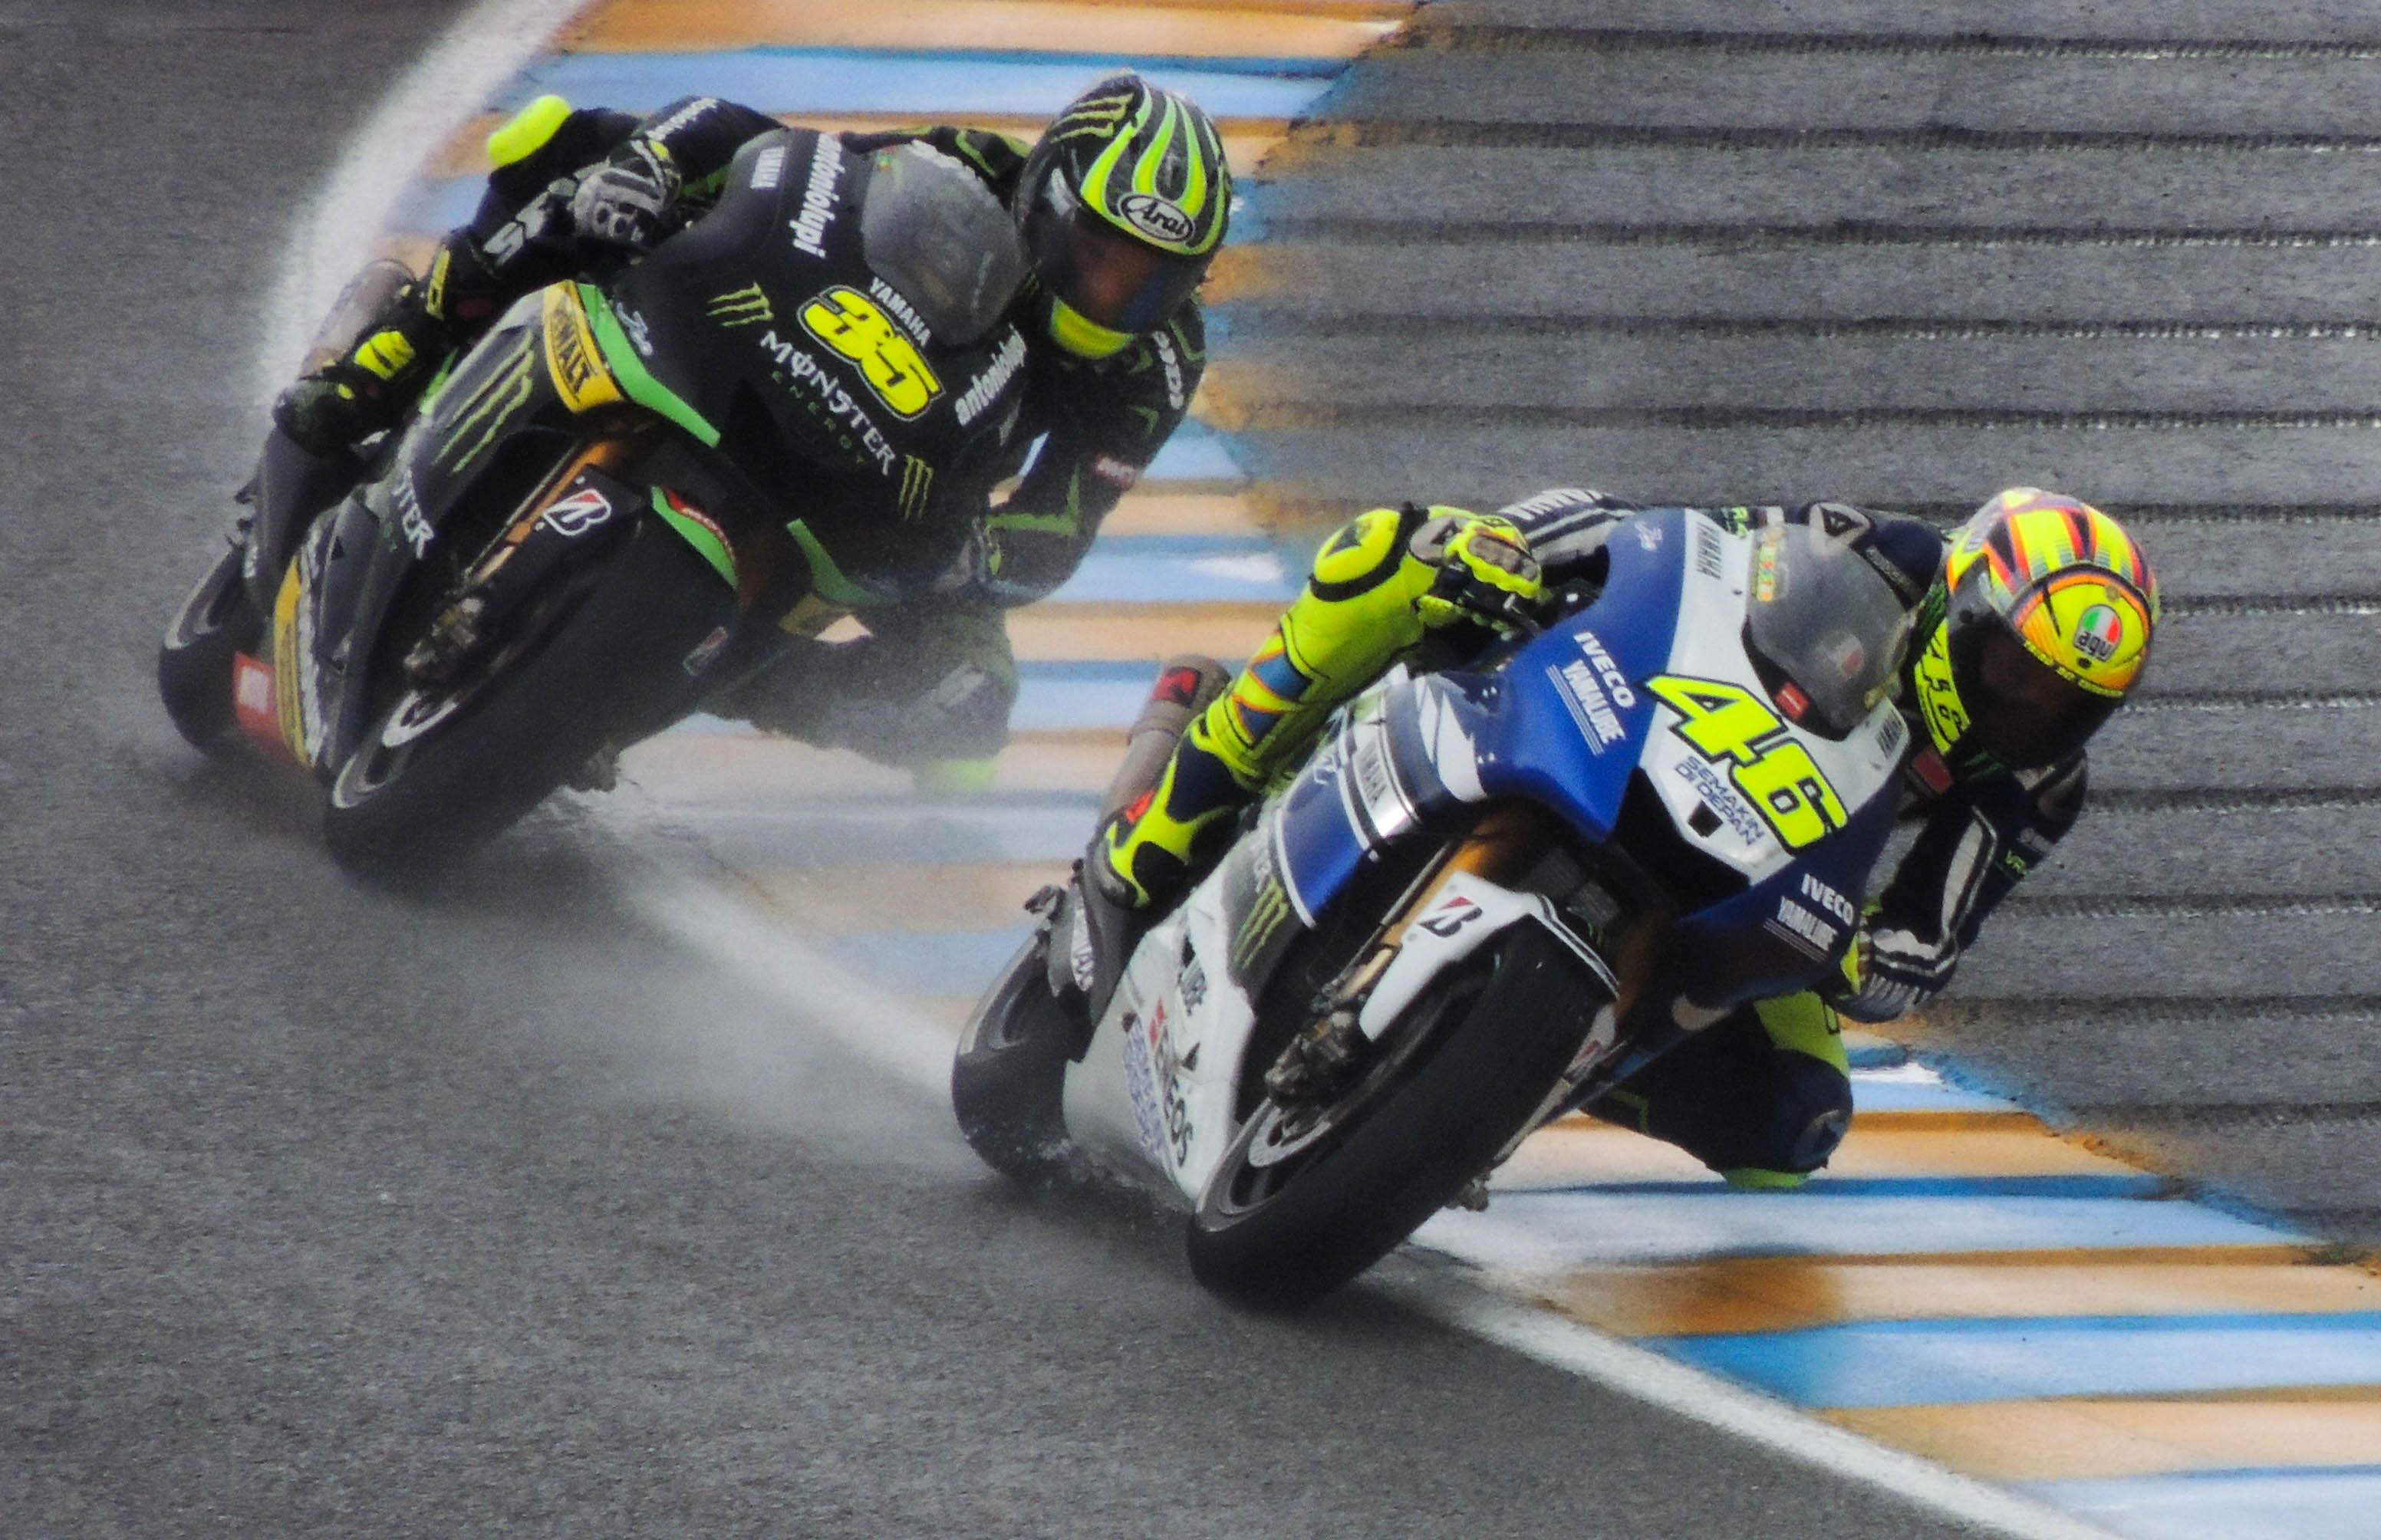 File:2013 - Le Mans - MotoGP 02 (cropped).jpg - Wikimedia Commons